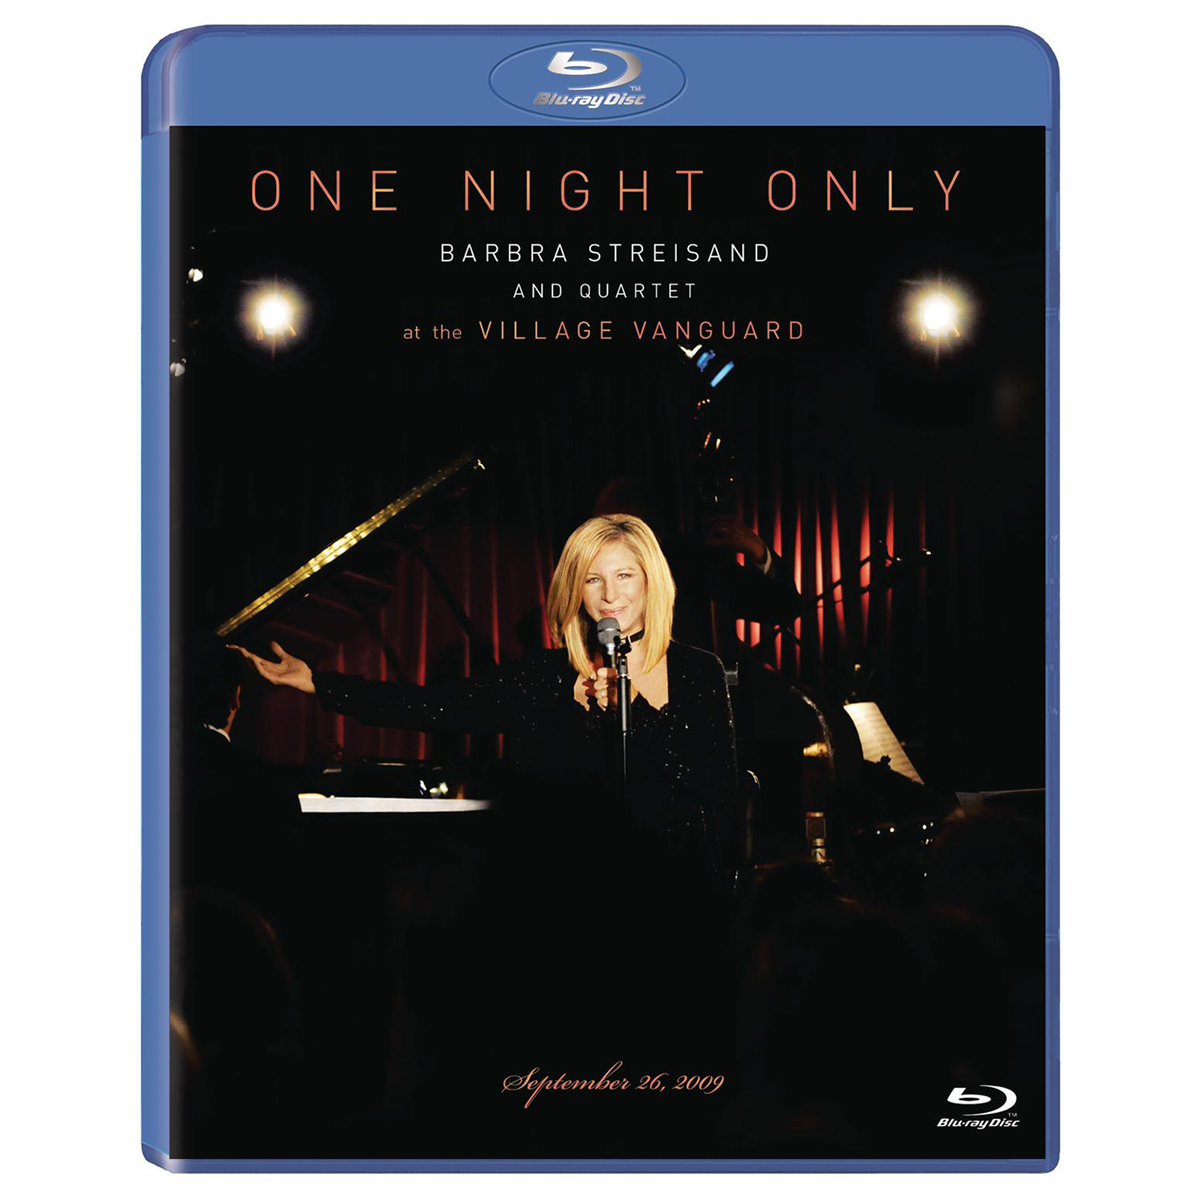 One Night Only Barbra Streisand And Quartet At The Village Vanguard September 26, 2009 - Blu-Ray